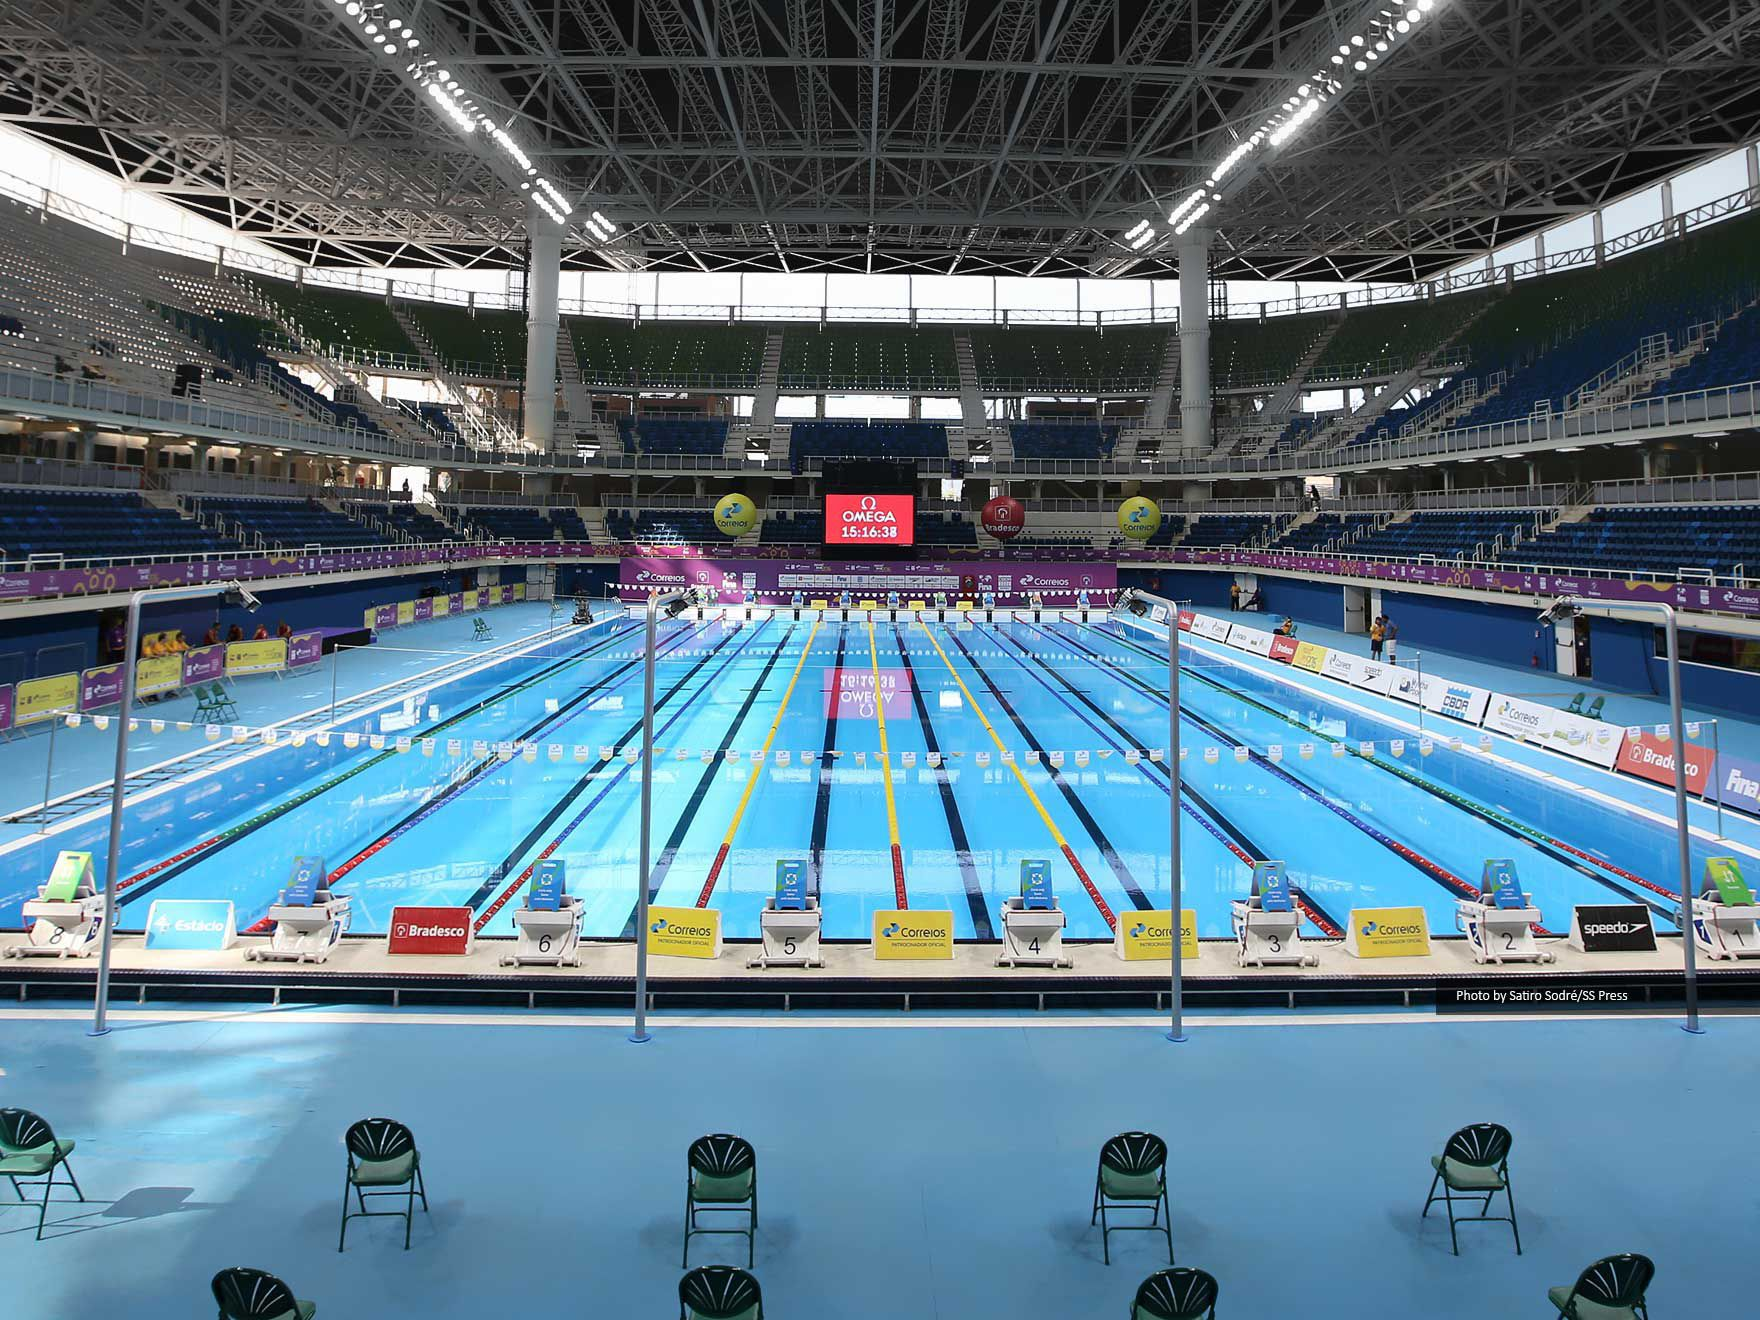 indoor olympic pool. Concrete Competition Pool / Public Indoor - RIO DE JANEIRO 2016, XXXI OLYMPIC GAMES Olympic I